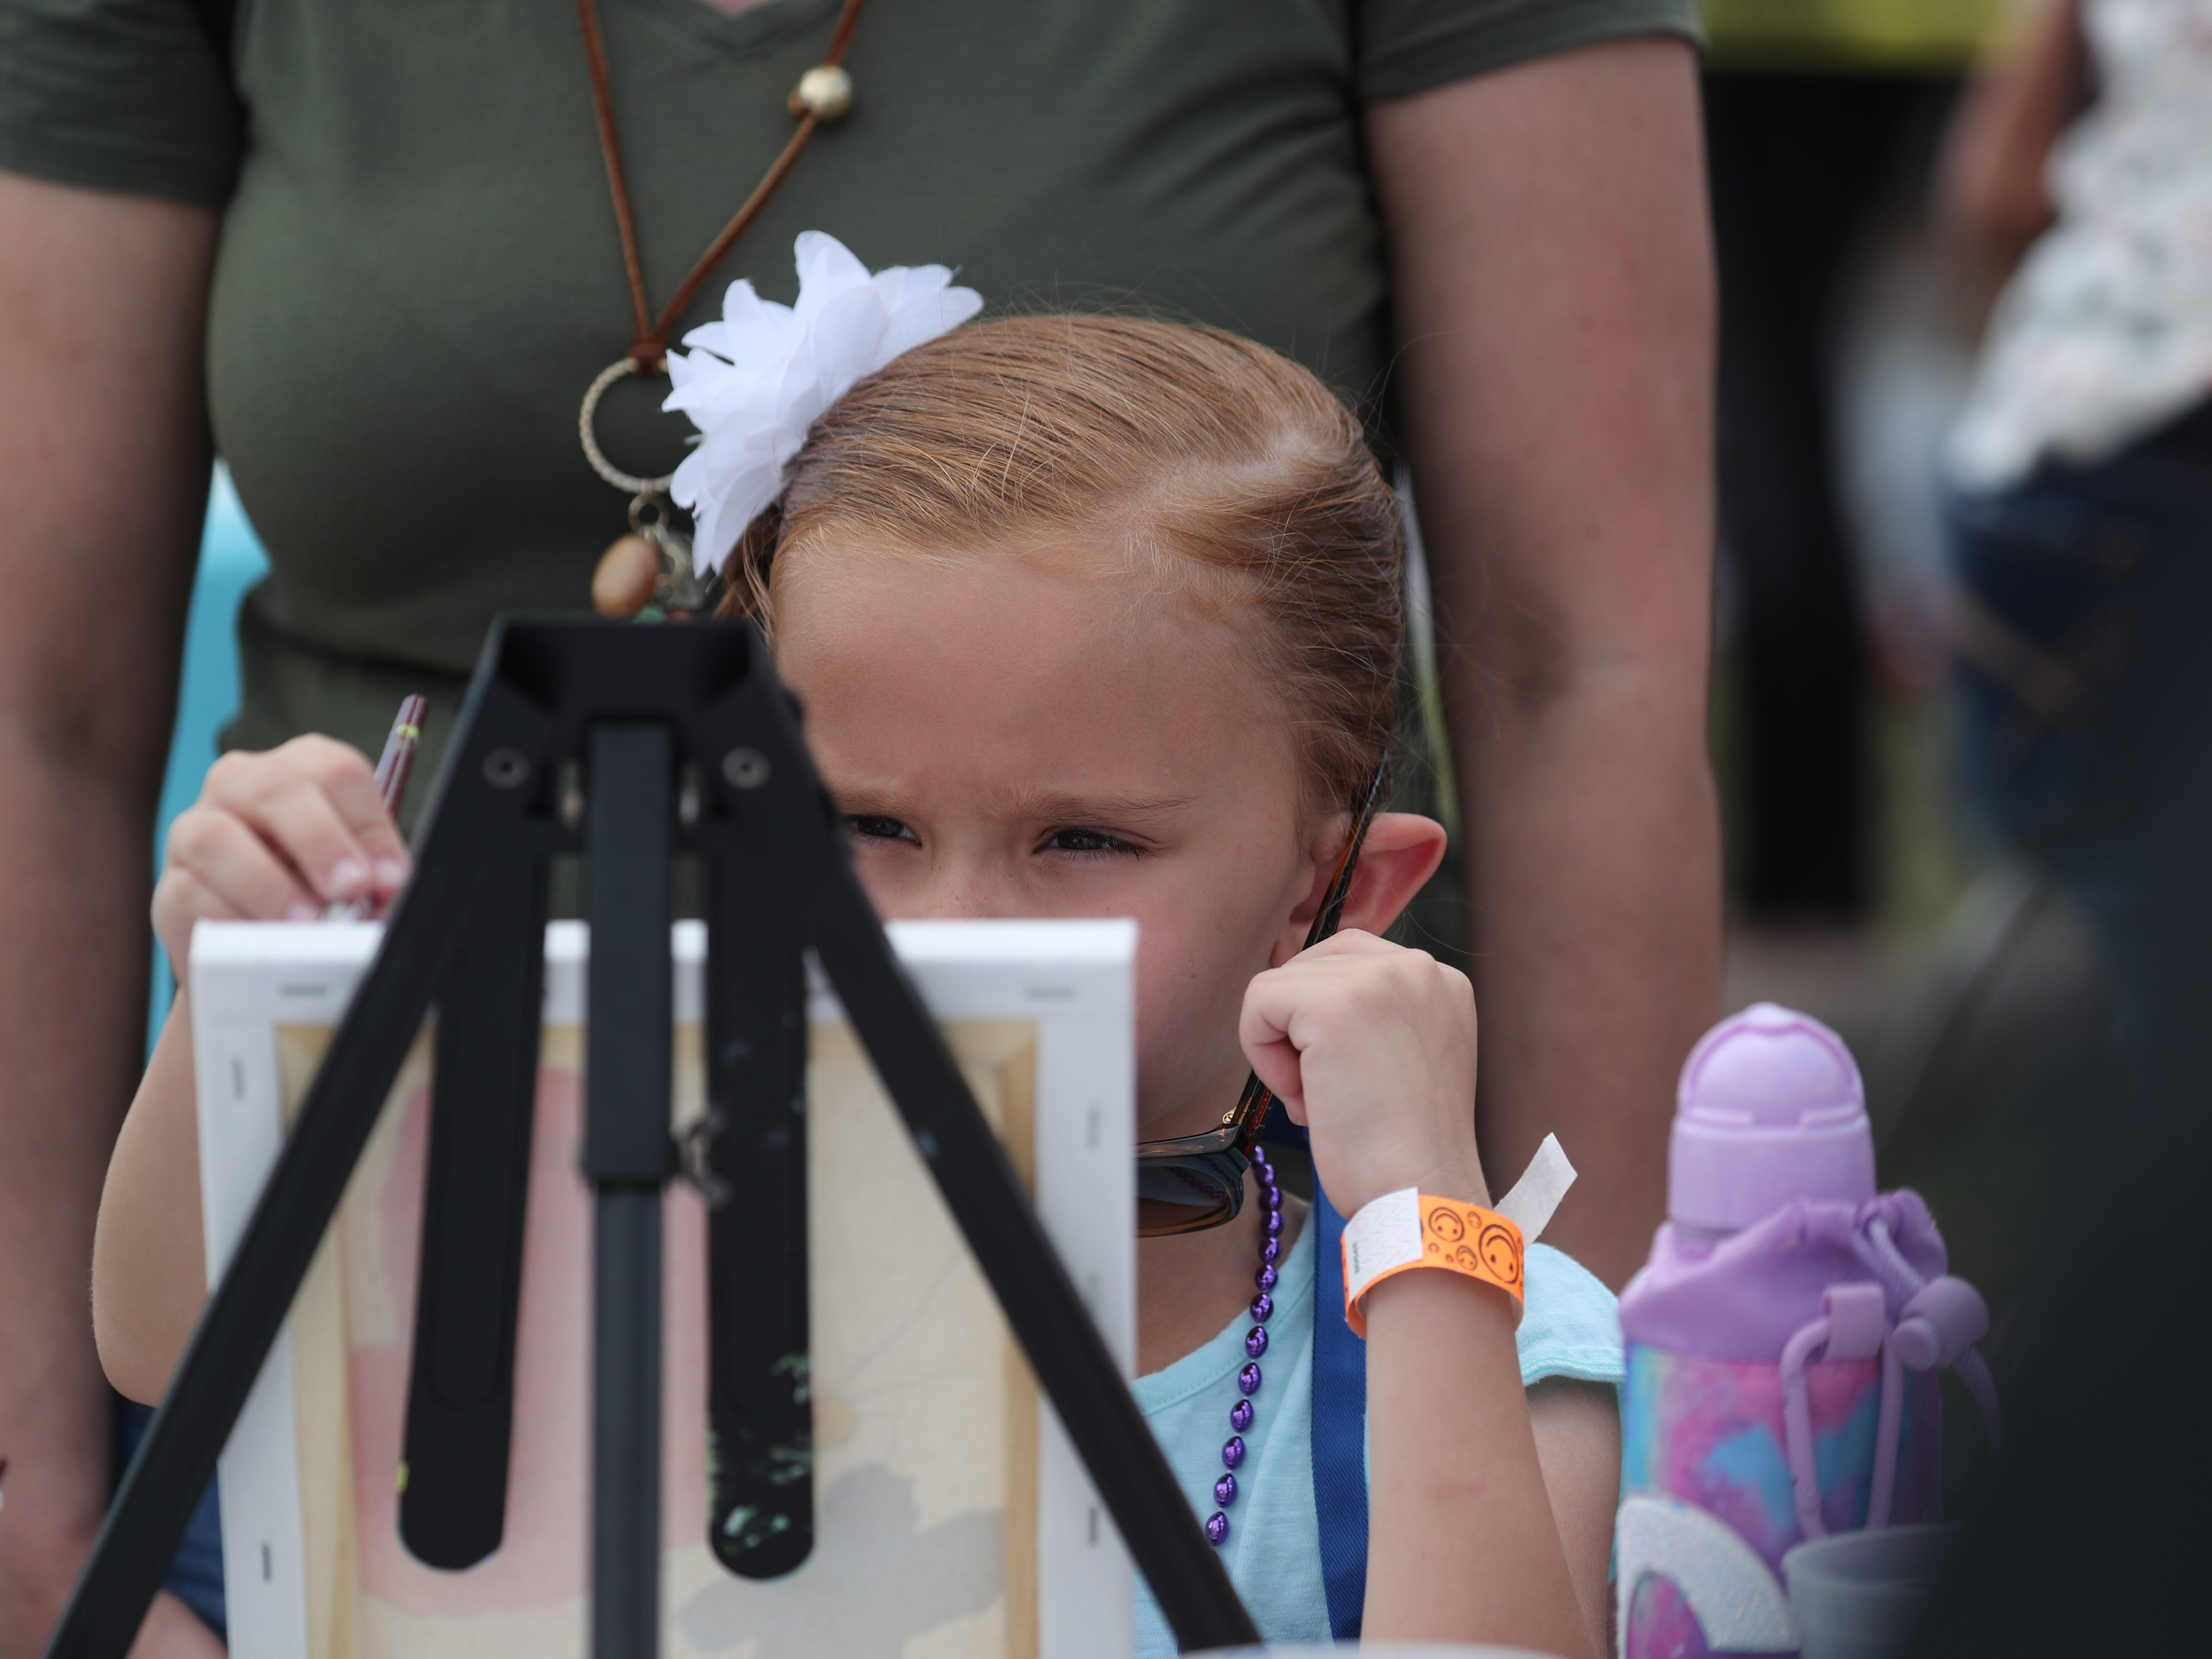 Carley Pilcher, 7, paints a butterfly at the Lights for Layla fundraiser on Saturday at Cape Assembly in Cape Coral.